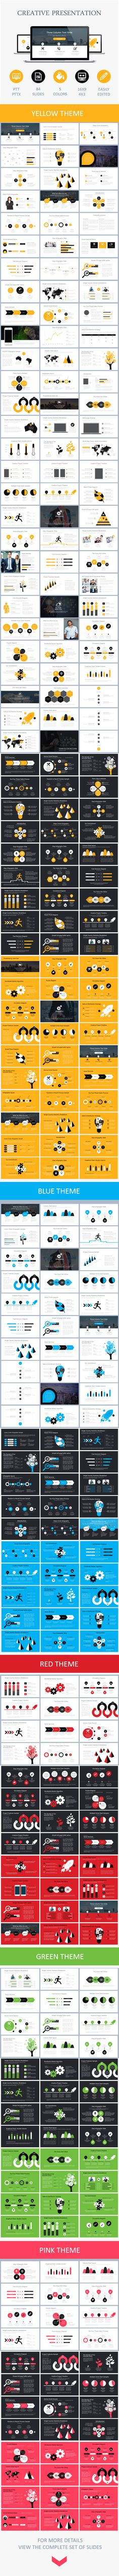 Creative Presentation (Powerpoint Templates)